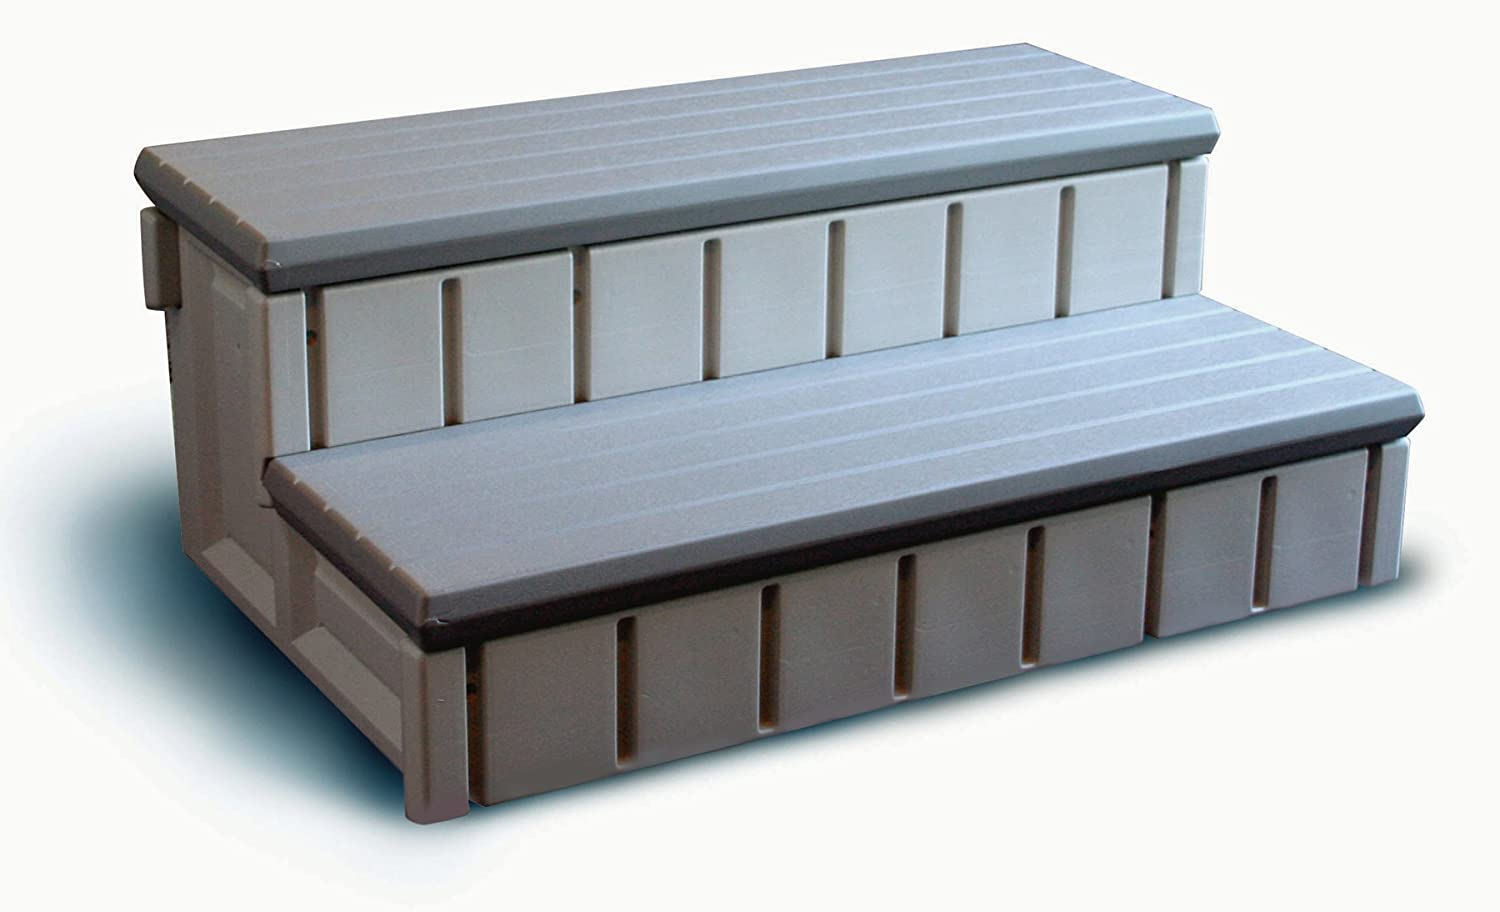 Beautiful Amazon.com : Confer Plastics Spa Step With Storage   Redwood : Swimming  Pool Ladders : Patio, Lawn U0026 Garden